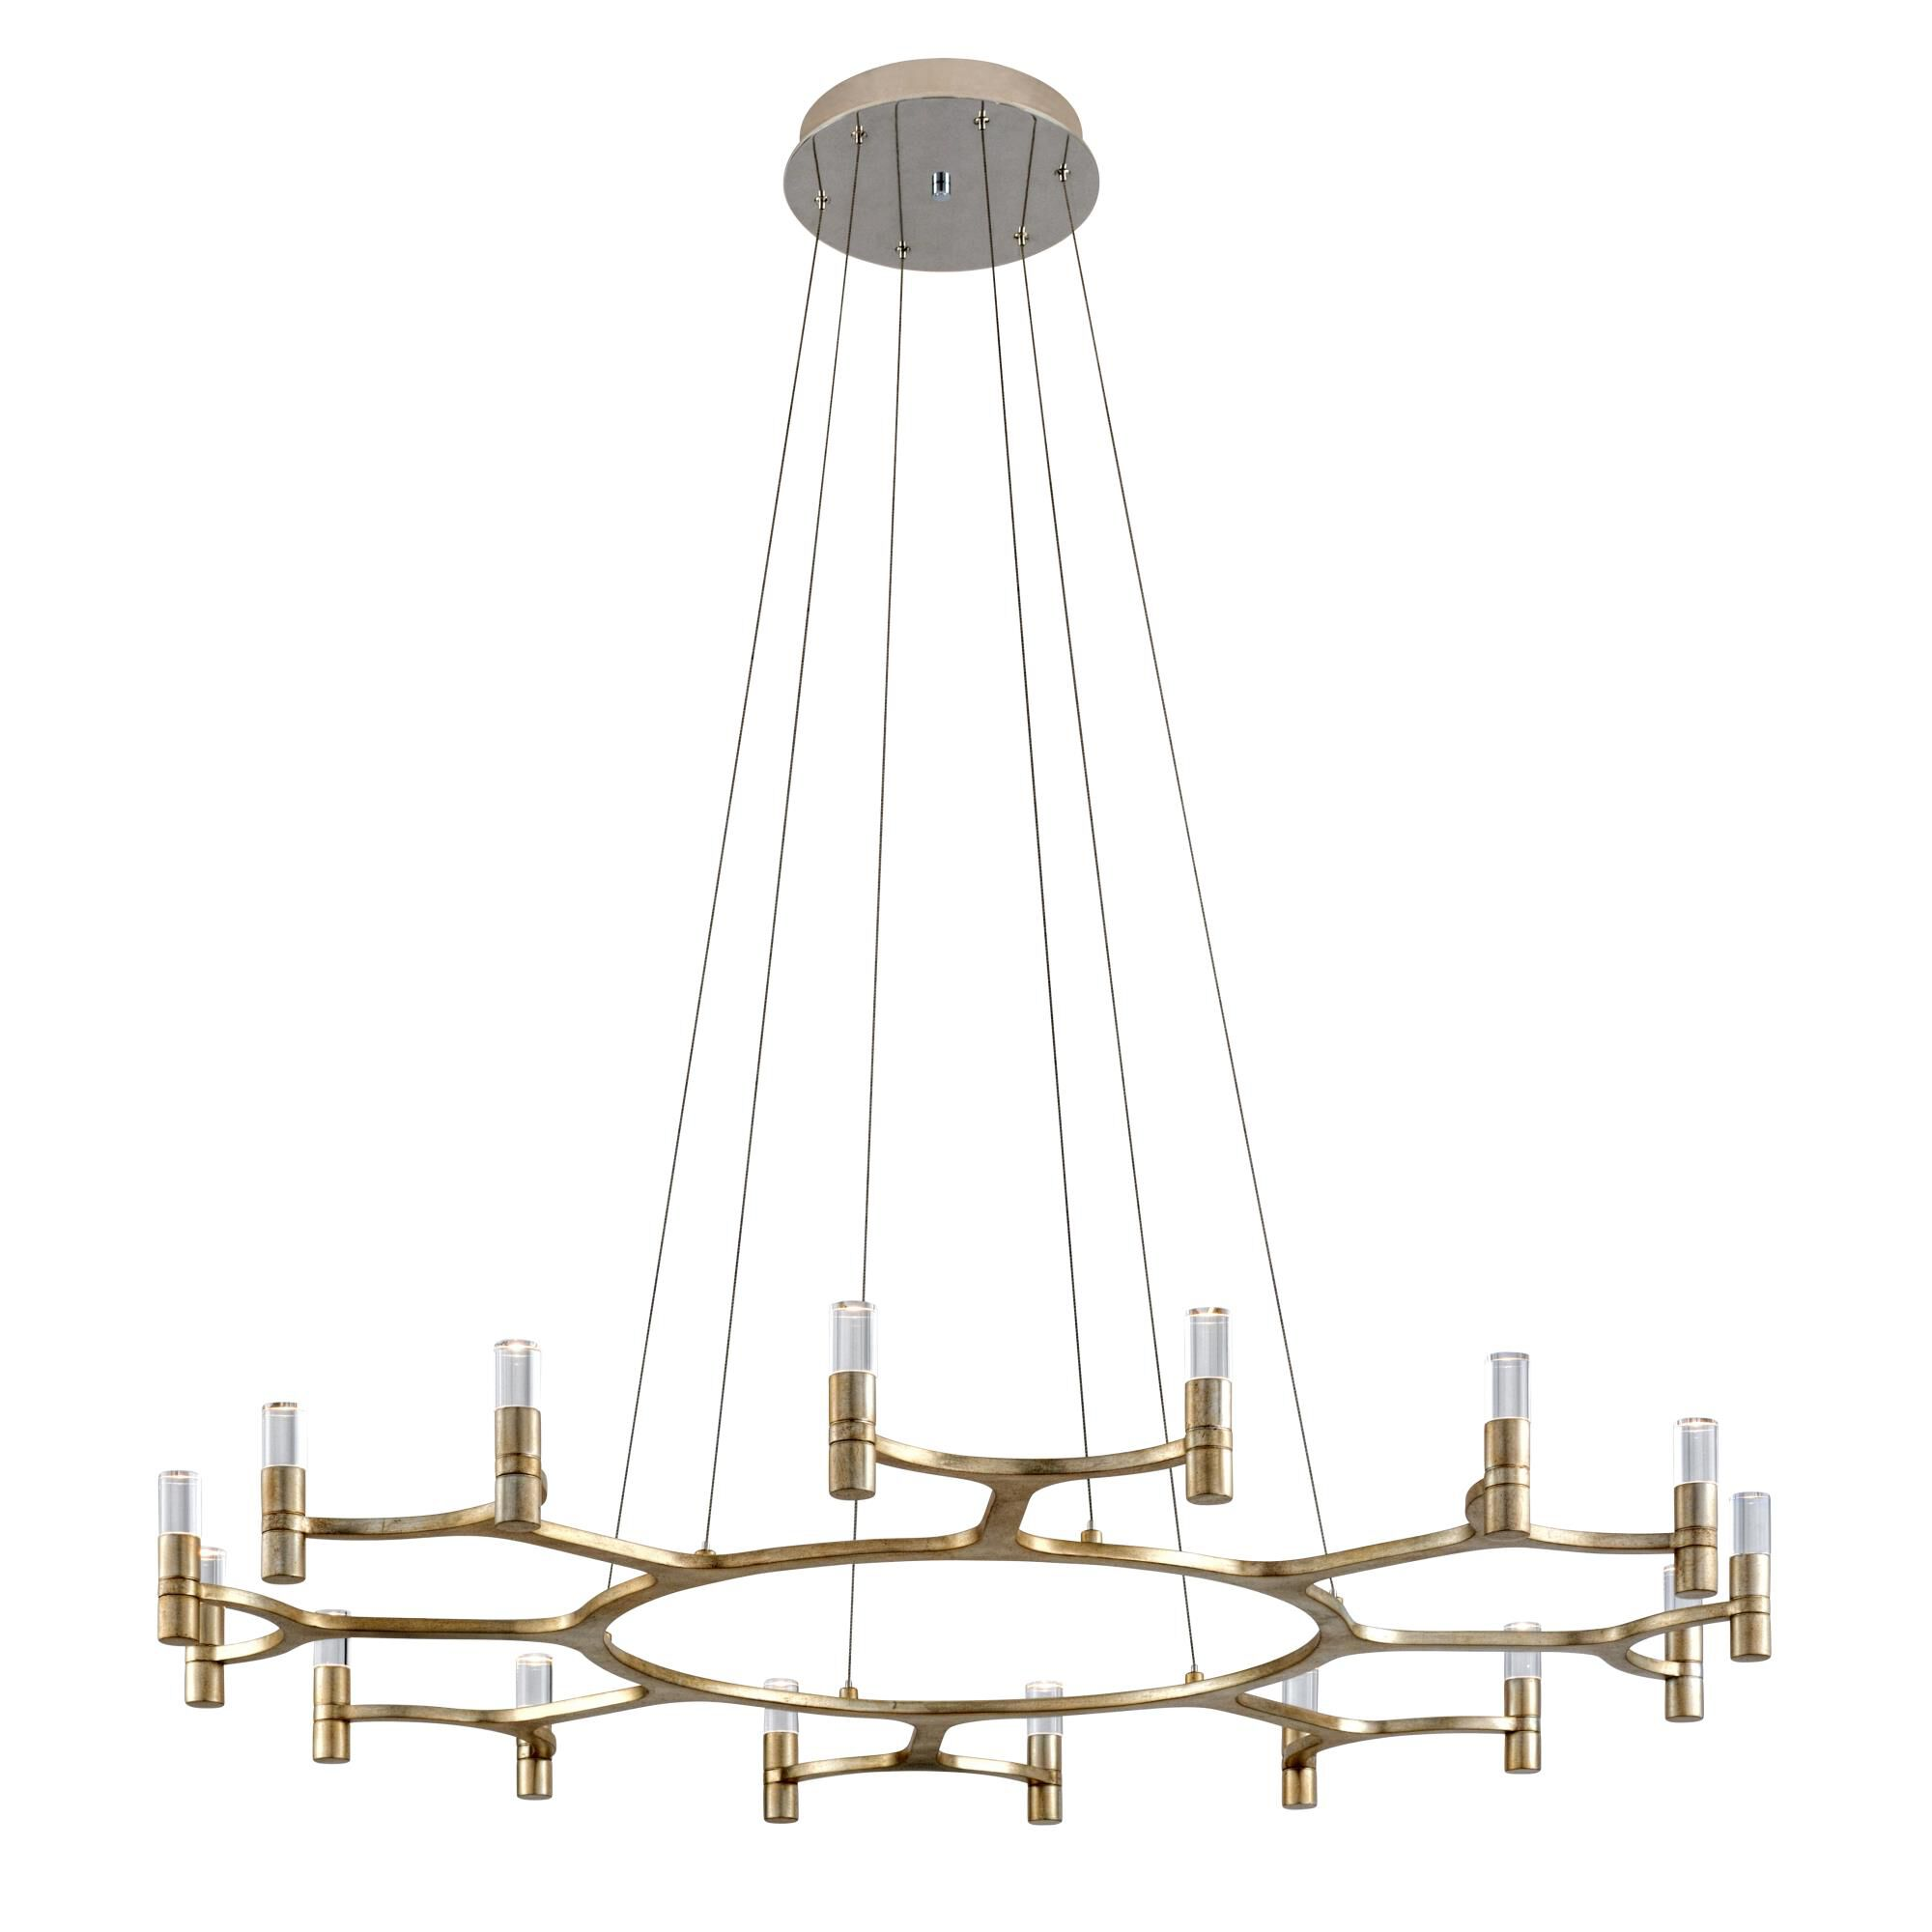 Corbett Lighting Nexus 16 Light Led Mini Chandelier Nexus - 258-016 - Modern Contemporary Mini Chandelier